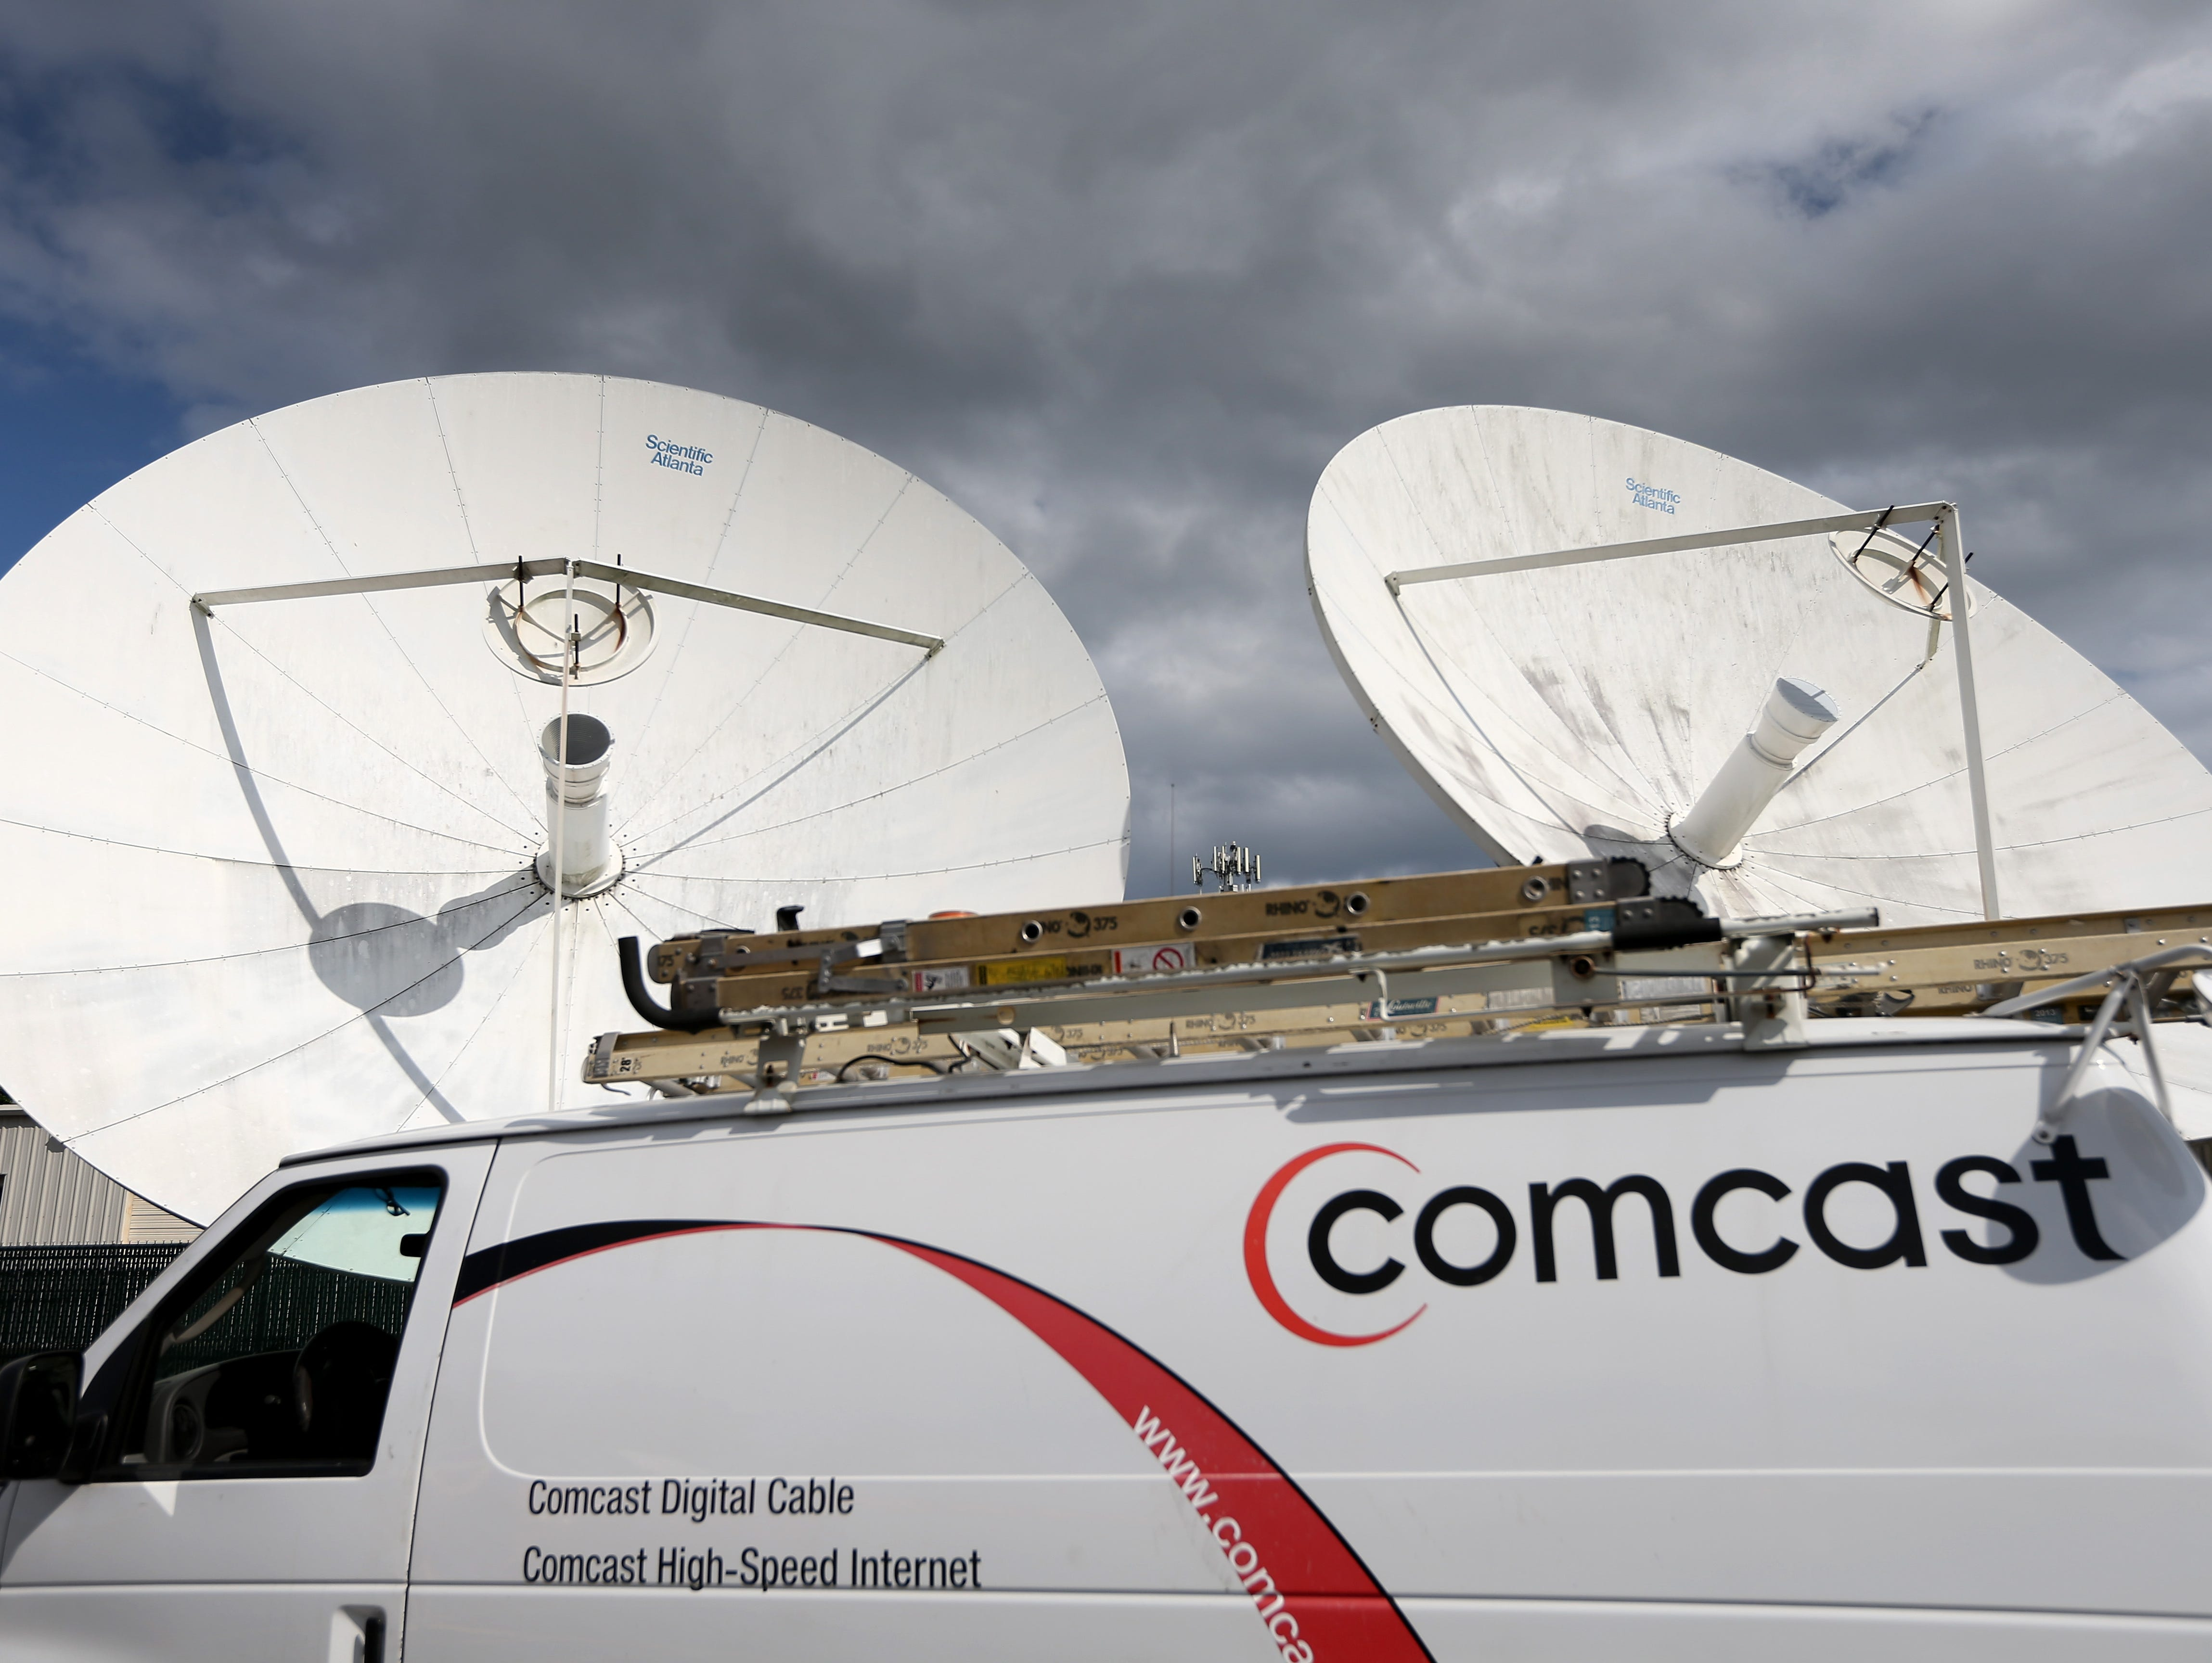 FILE - JULY 22:  Comcast Corp. reports its year-end  and fourth quarter earnings on Feb. 24, 2014.  POMPANO BEACH, FL - FEBRUARY 13:  A Comcast truck is seen parked at one of their centers on February 13, 2014 in Pompano Beach, Florida.  Today, Comca